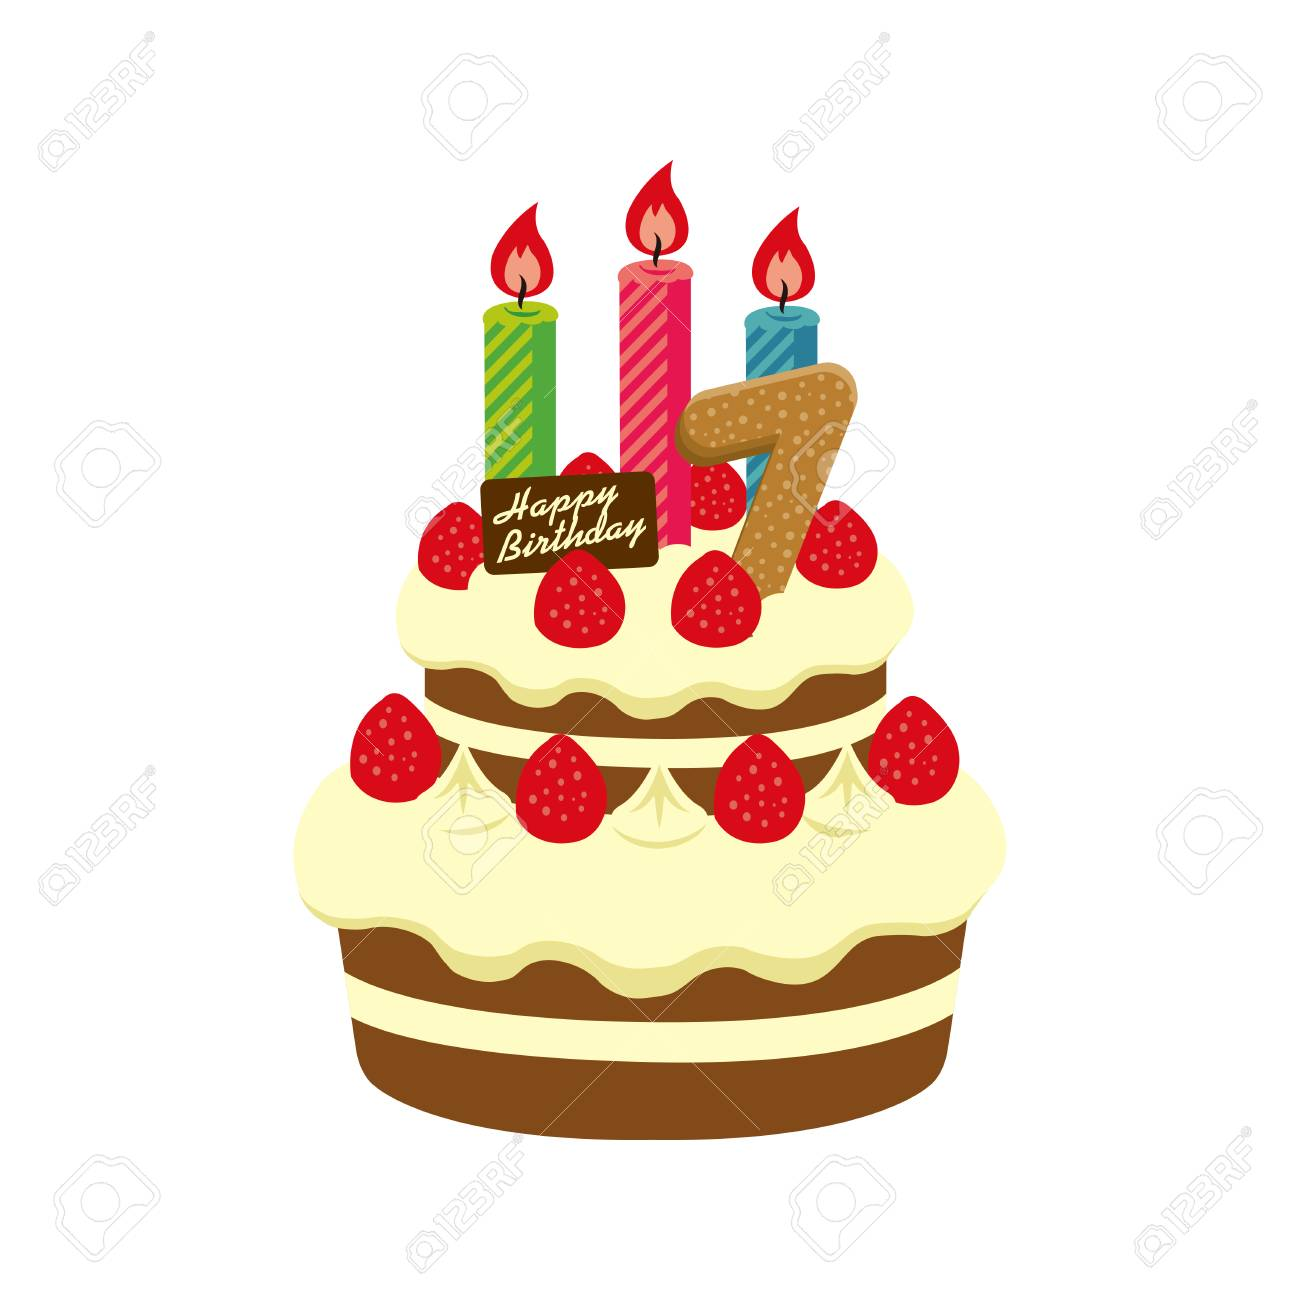 Astounding Birthday Cake Illustration For 7 Years Old Royalty Free Cliparts Funny Birthday Cards Online Alyptdamsfinfo